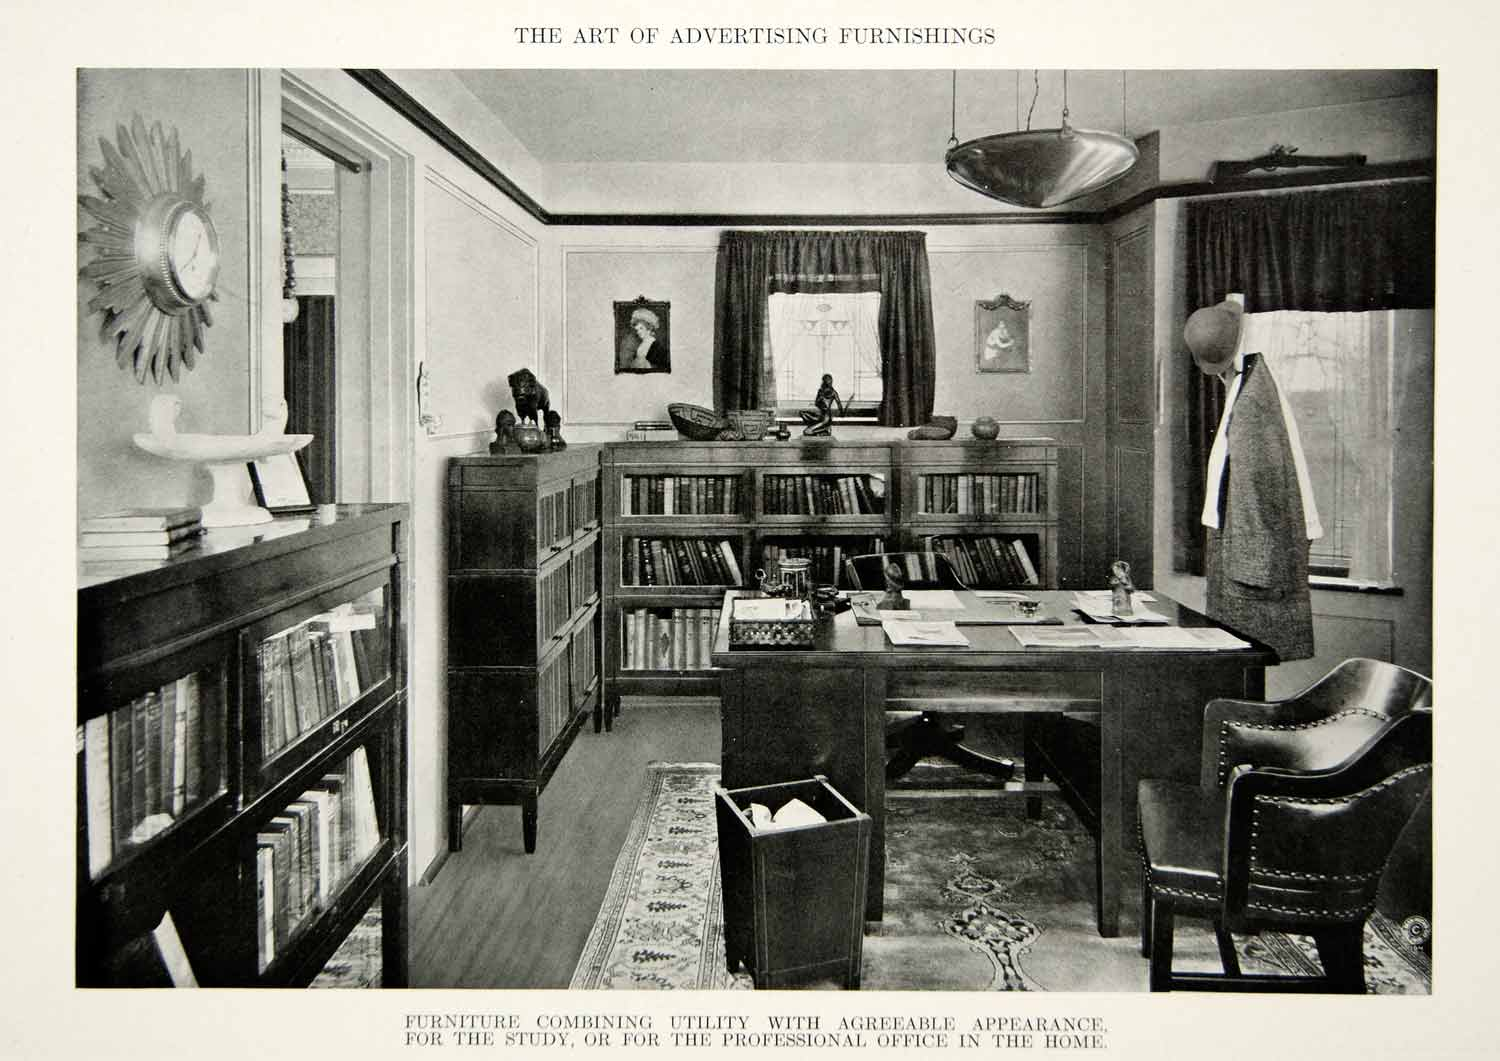 1916 Print Antique Home Office Furniture Bookcase Desk Chair Interior on home library with ladder, home office furniture ideas, home office desk with drawers, home office furniture design, girls loft bunk beds with desk, home office bookcase with ladder, home office desk furniture wood, home office wall units with desk,